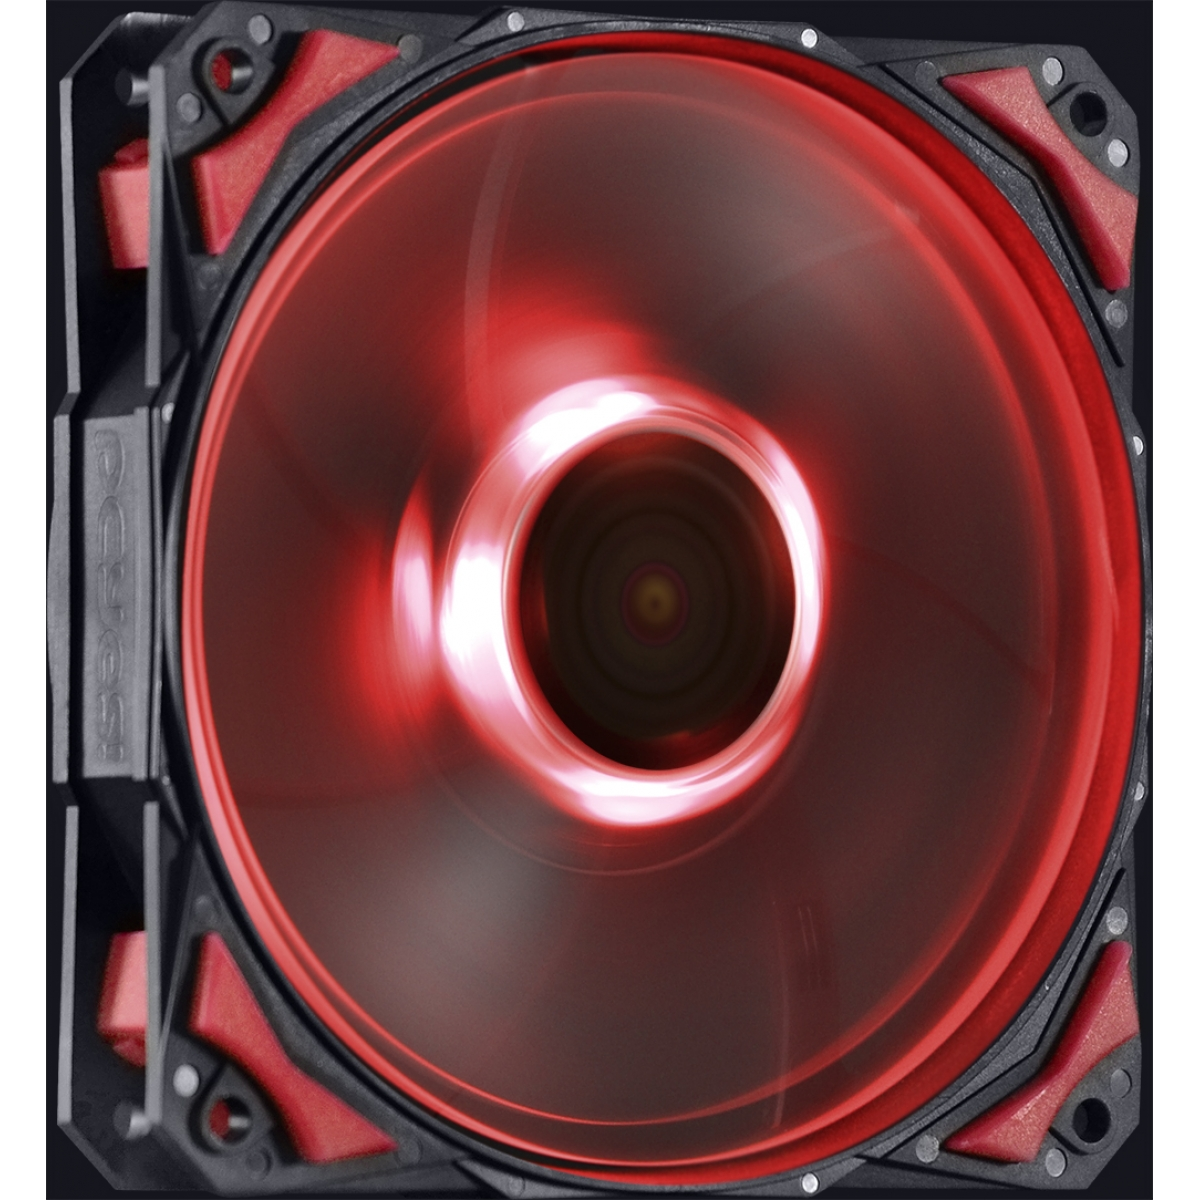 Cooler para Gabinete Pcyes Fury F4, LED Red 120mm, F4120LDVM